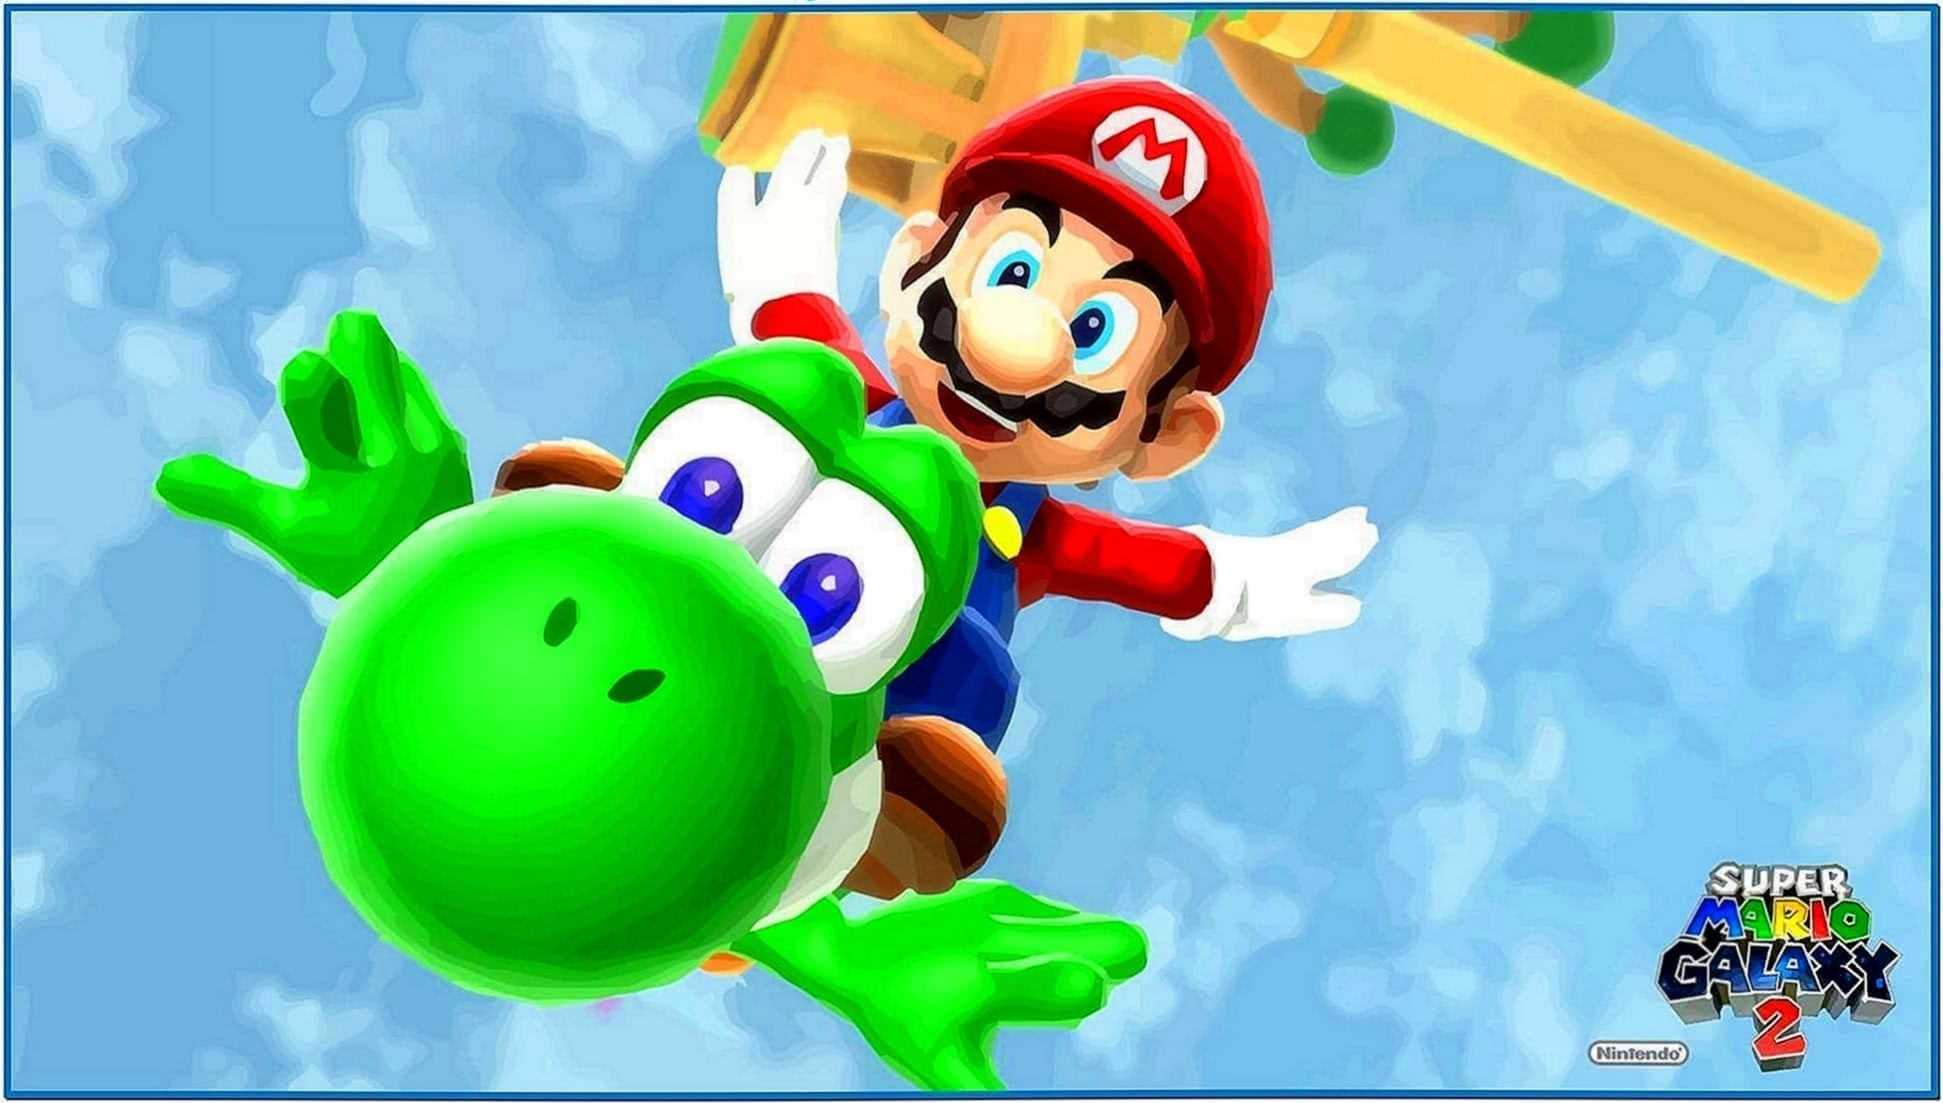 Super Mario Galaxy Screensaver